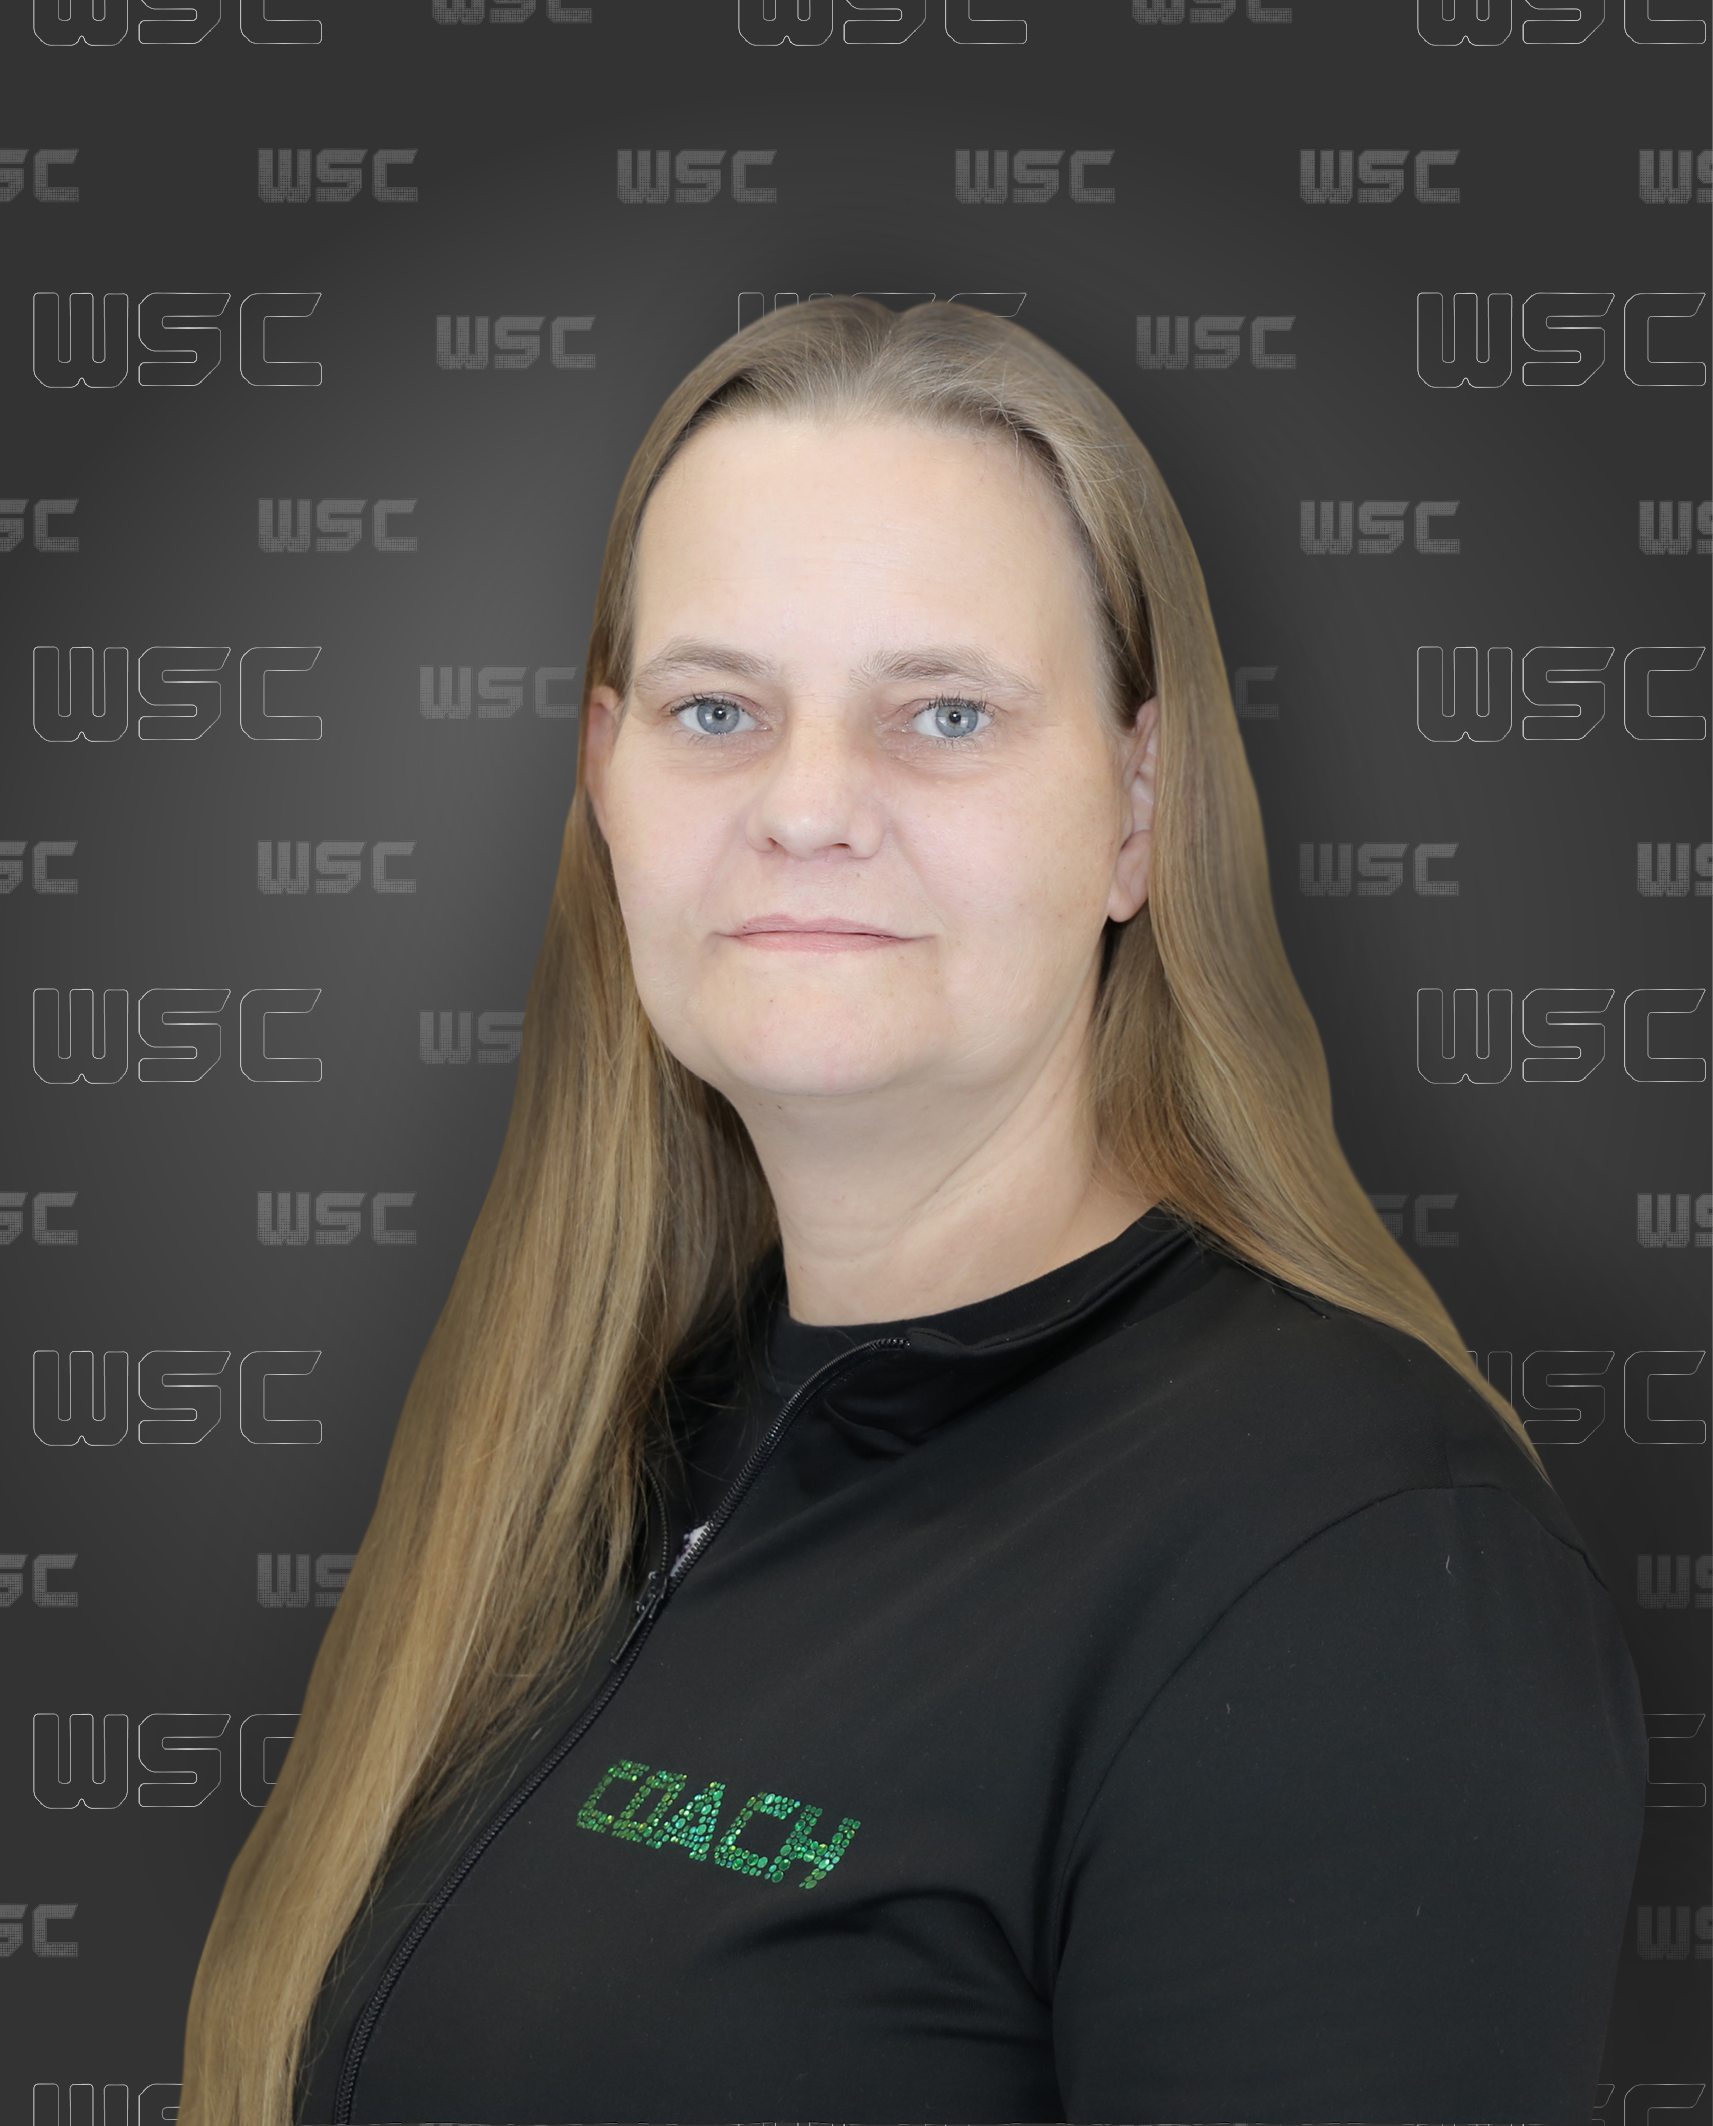 WSC Coaching Staff: Katrin Horn